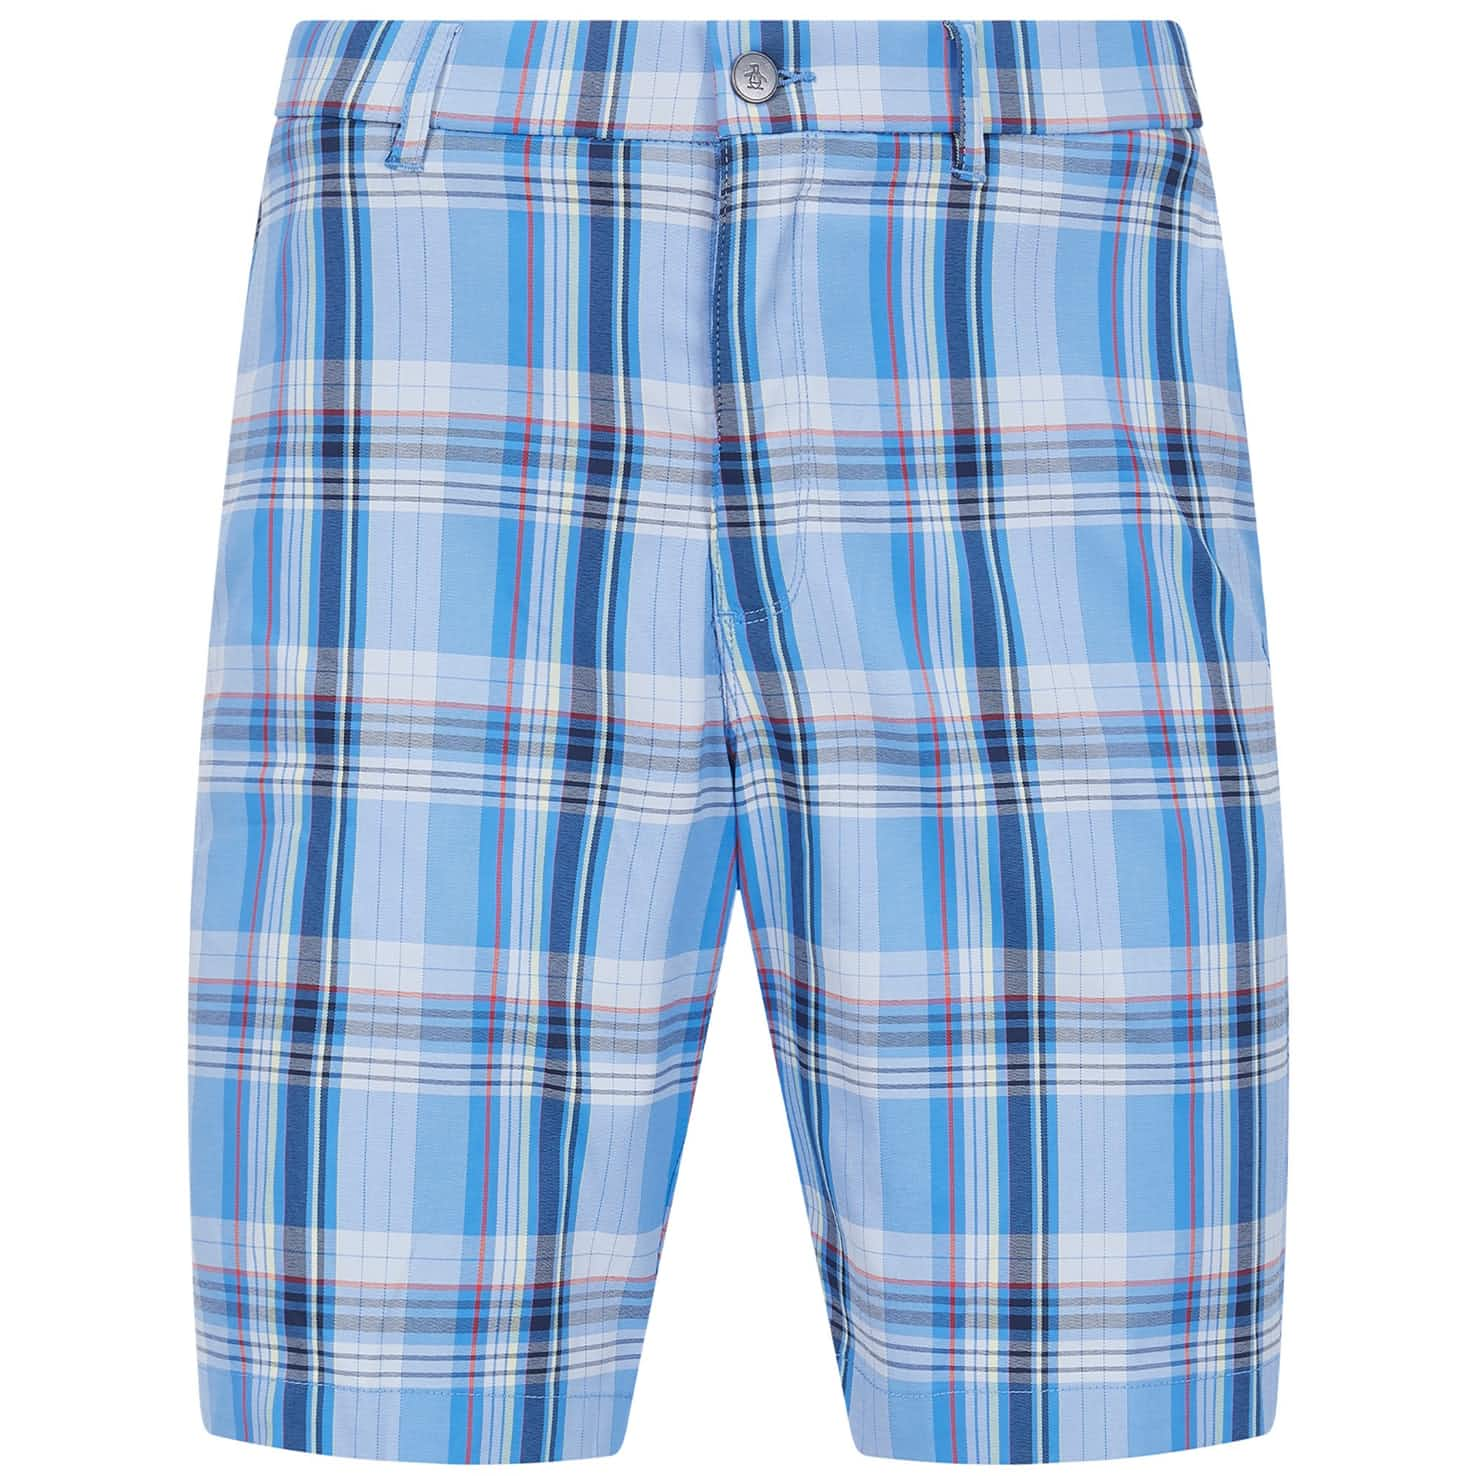 Yarn Dye Roadmap Plaid Shorts Regatta - SS20